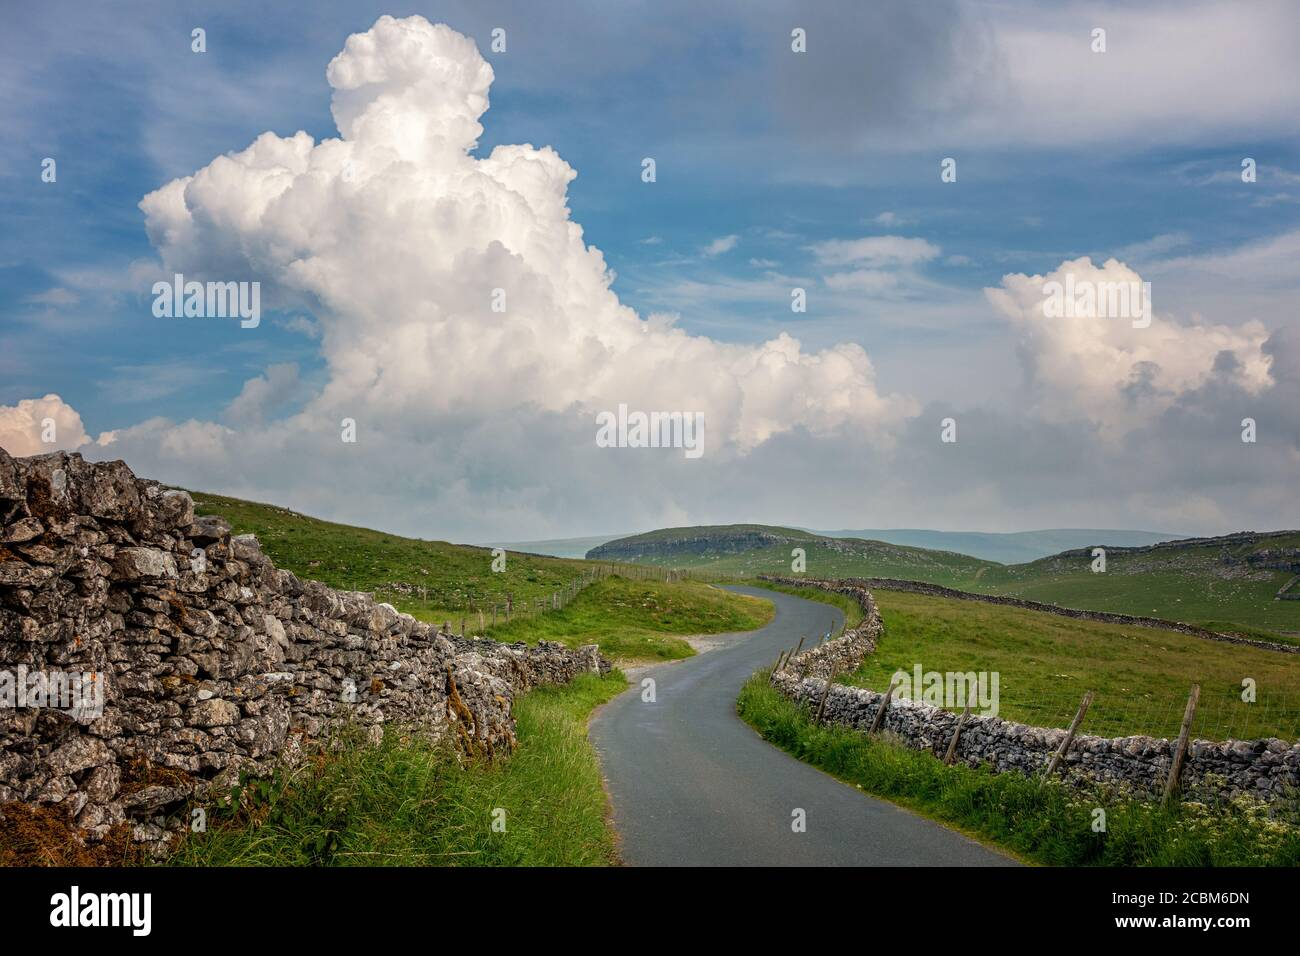 UK landscapes: Country lane in stunning scenery in the Yorkshire Dales National Park, heading over Malham Moor with thundercloud building Stock Photo